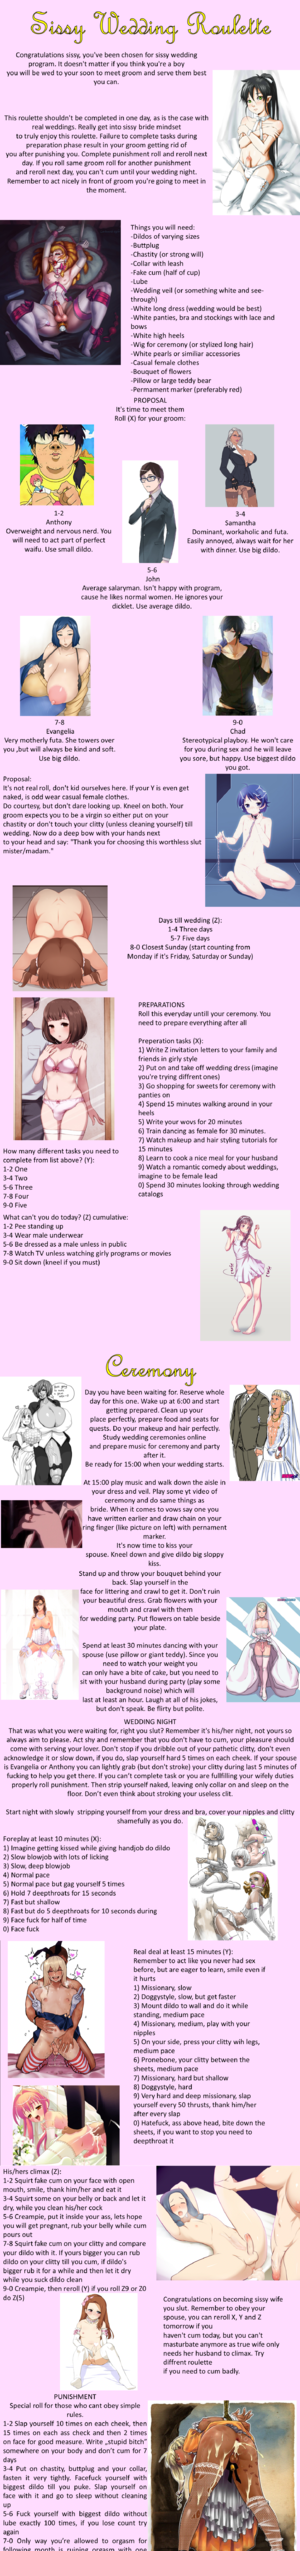 Sissy Wedding Roulette